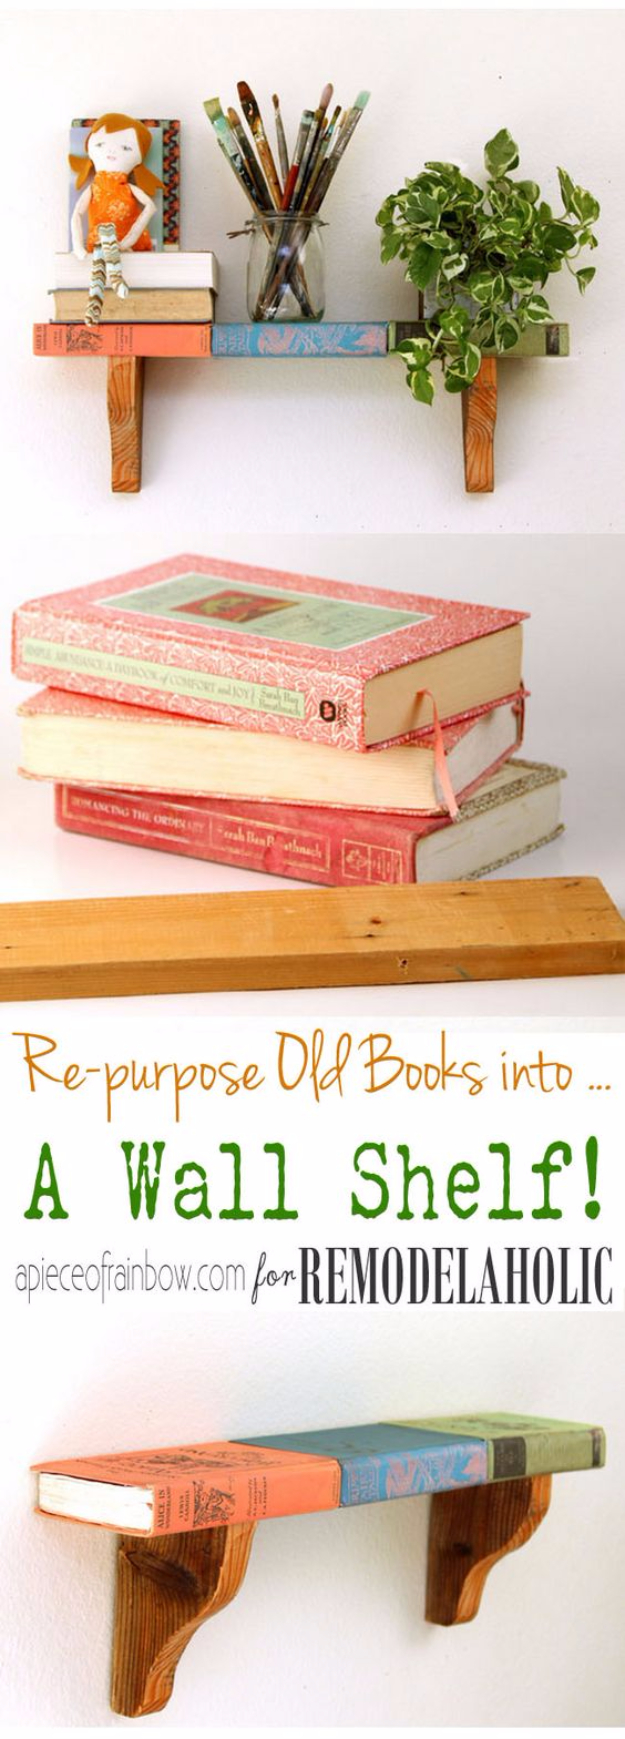 DIY Projects Made With Old Books - Old Books Into Wall Shelf - Make DIY Gifts, Crafts and Home Decor With Old Book Pages and Hardcover and Paperbacks - Easy Shelving, Decorations, Wall Art and Centerpieces with BOOKS